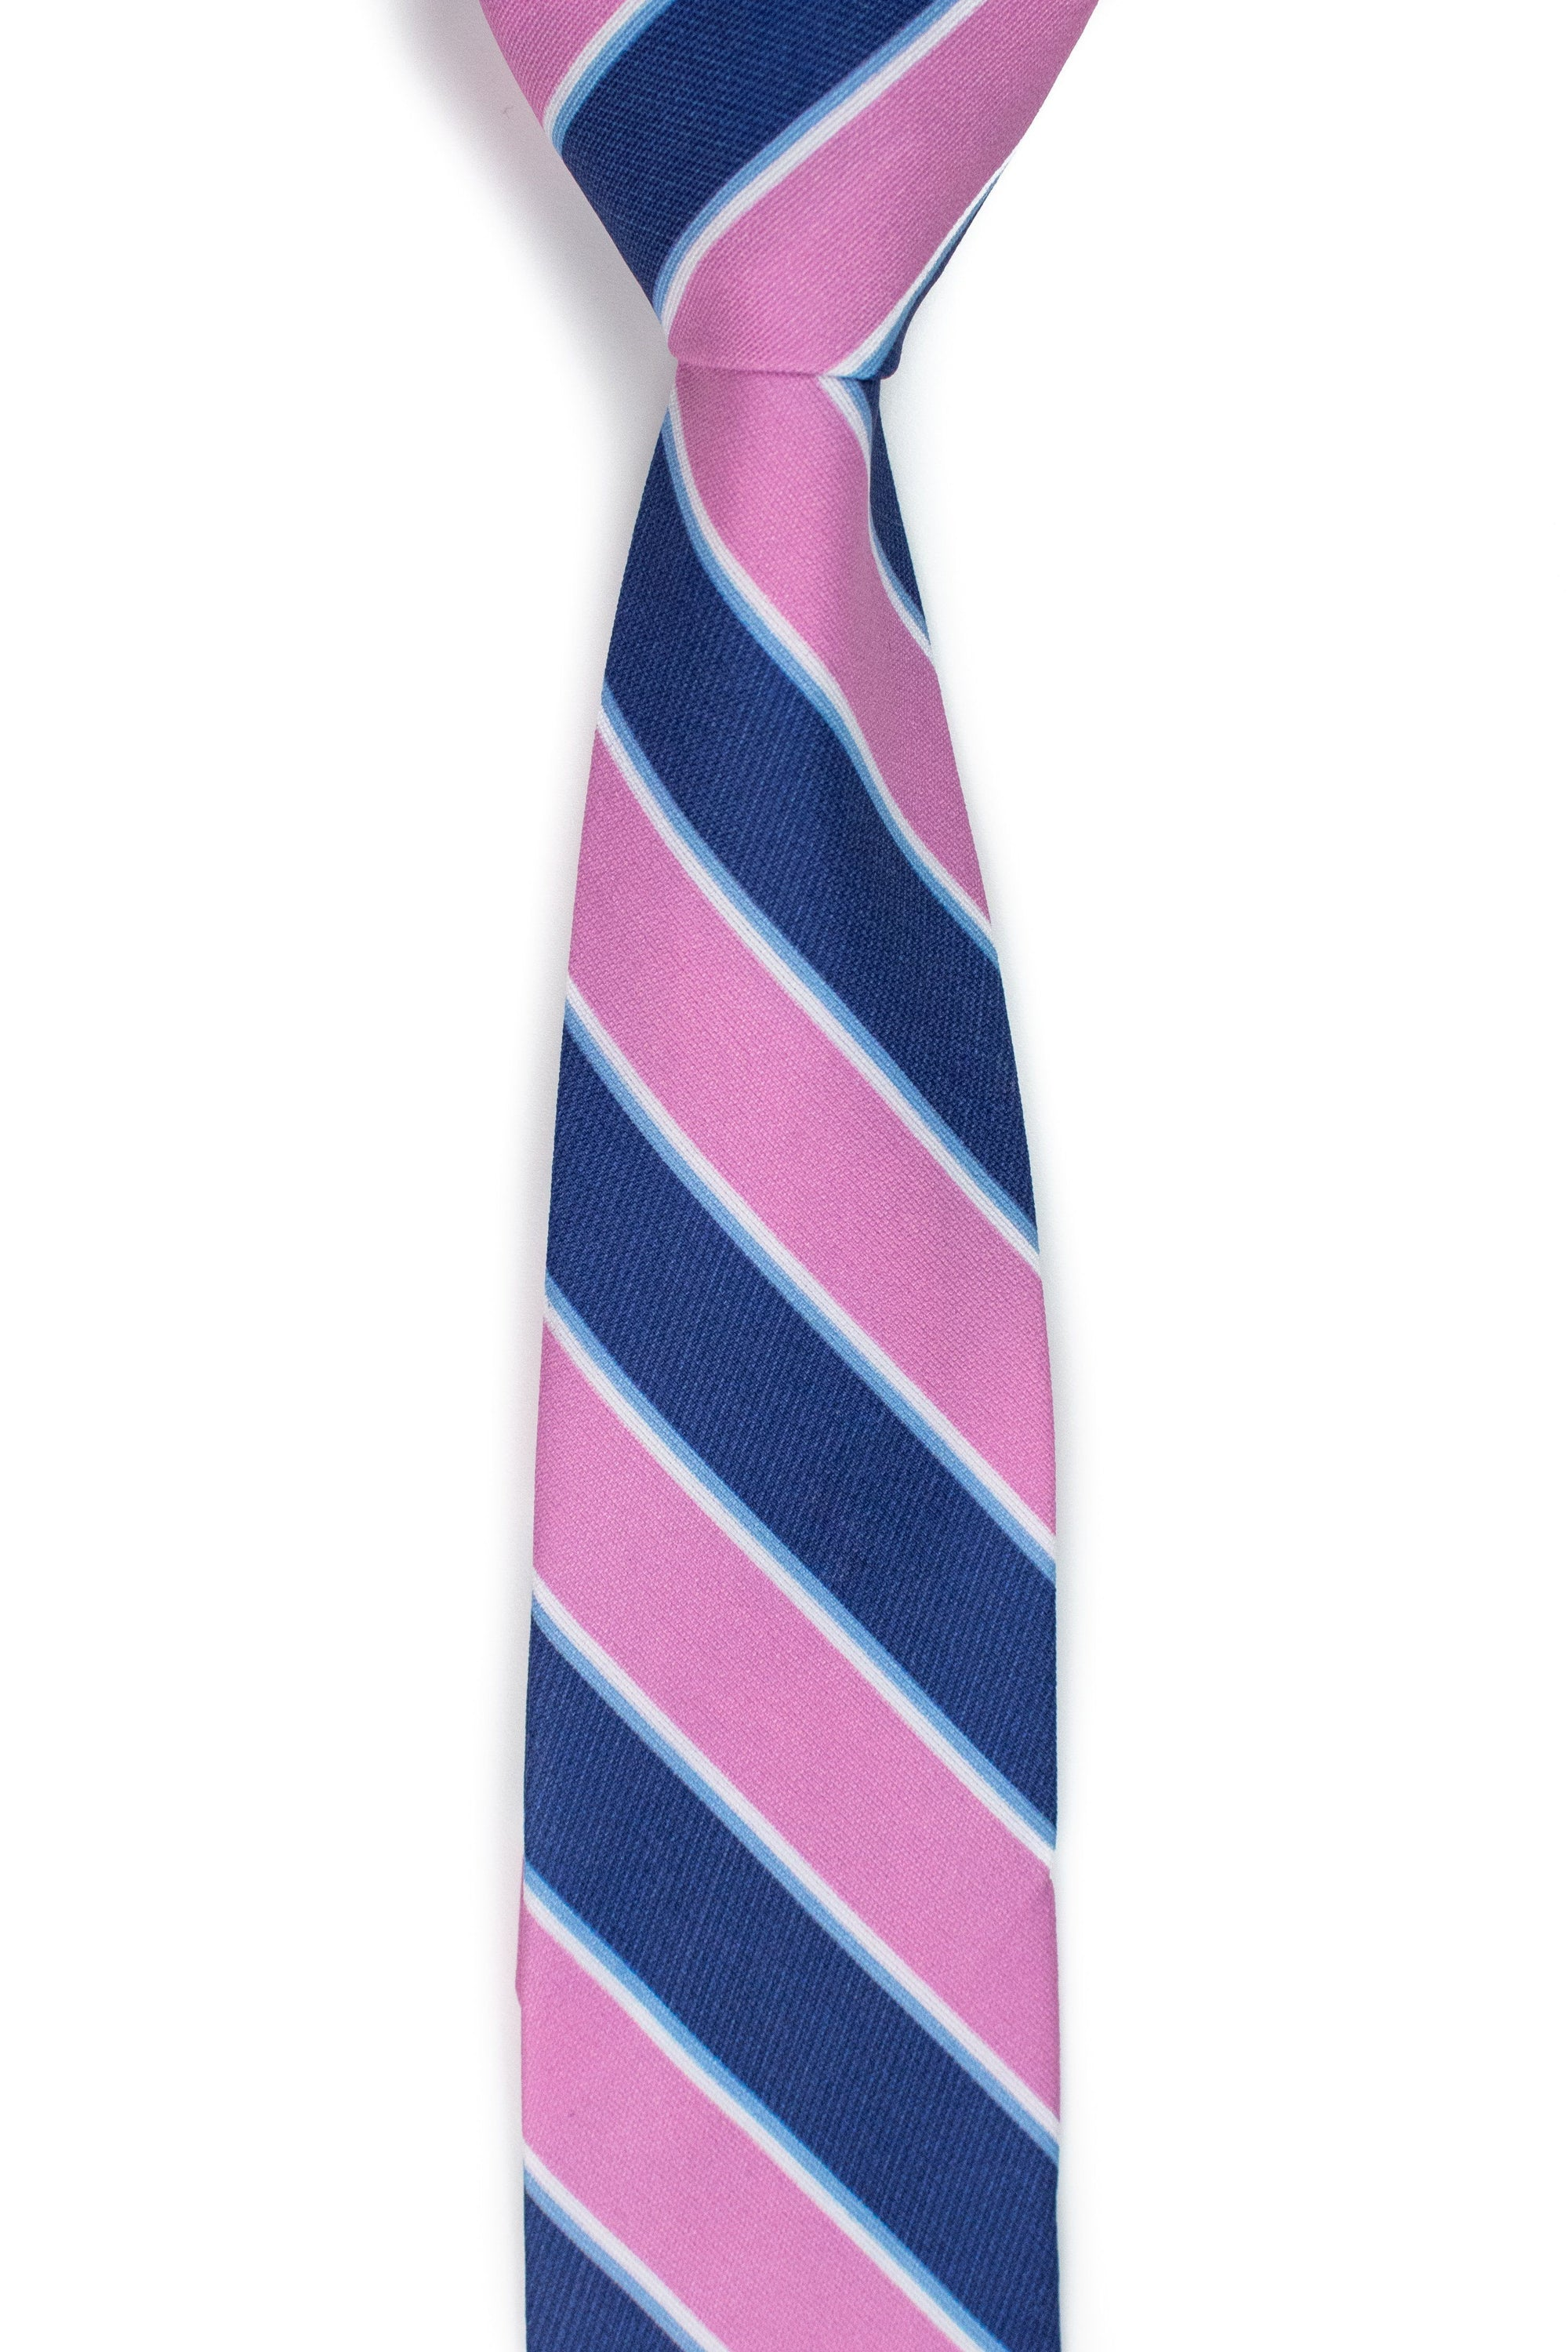 Melbourne - Navy and Pink Striped Tie